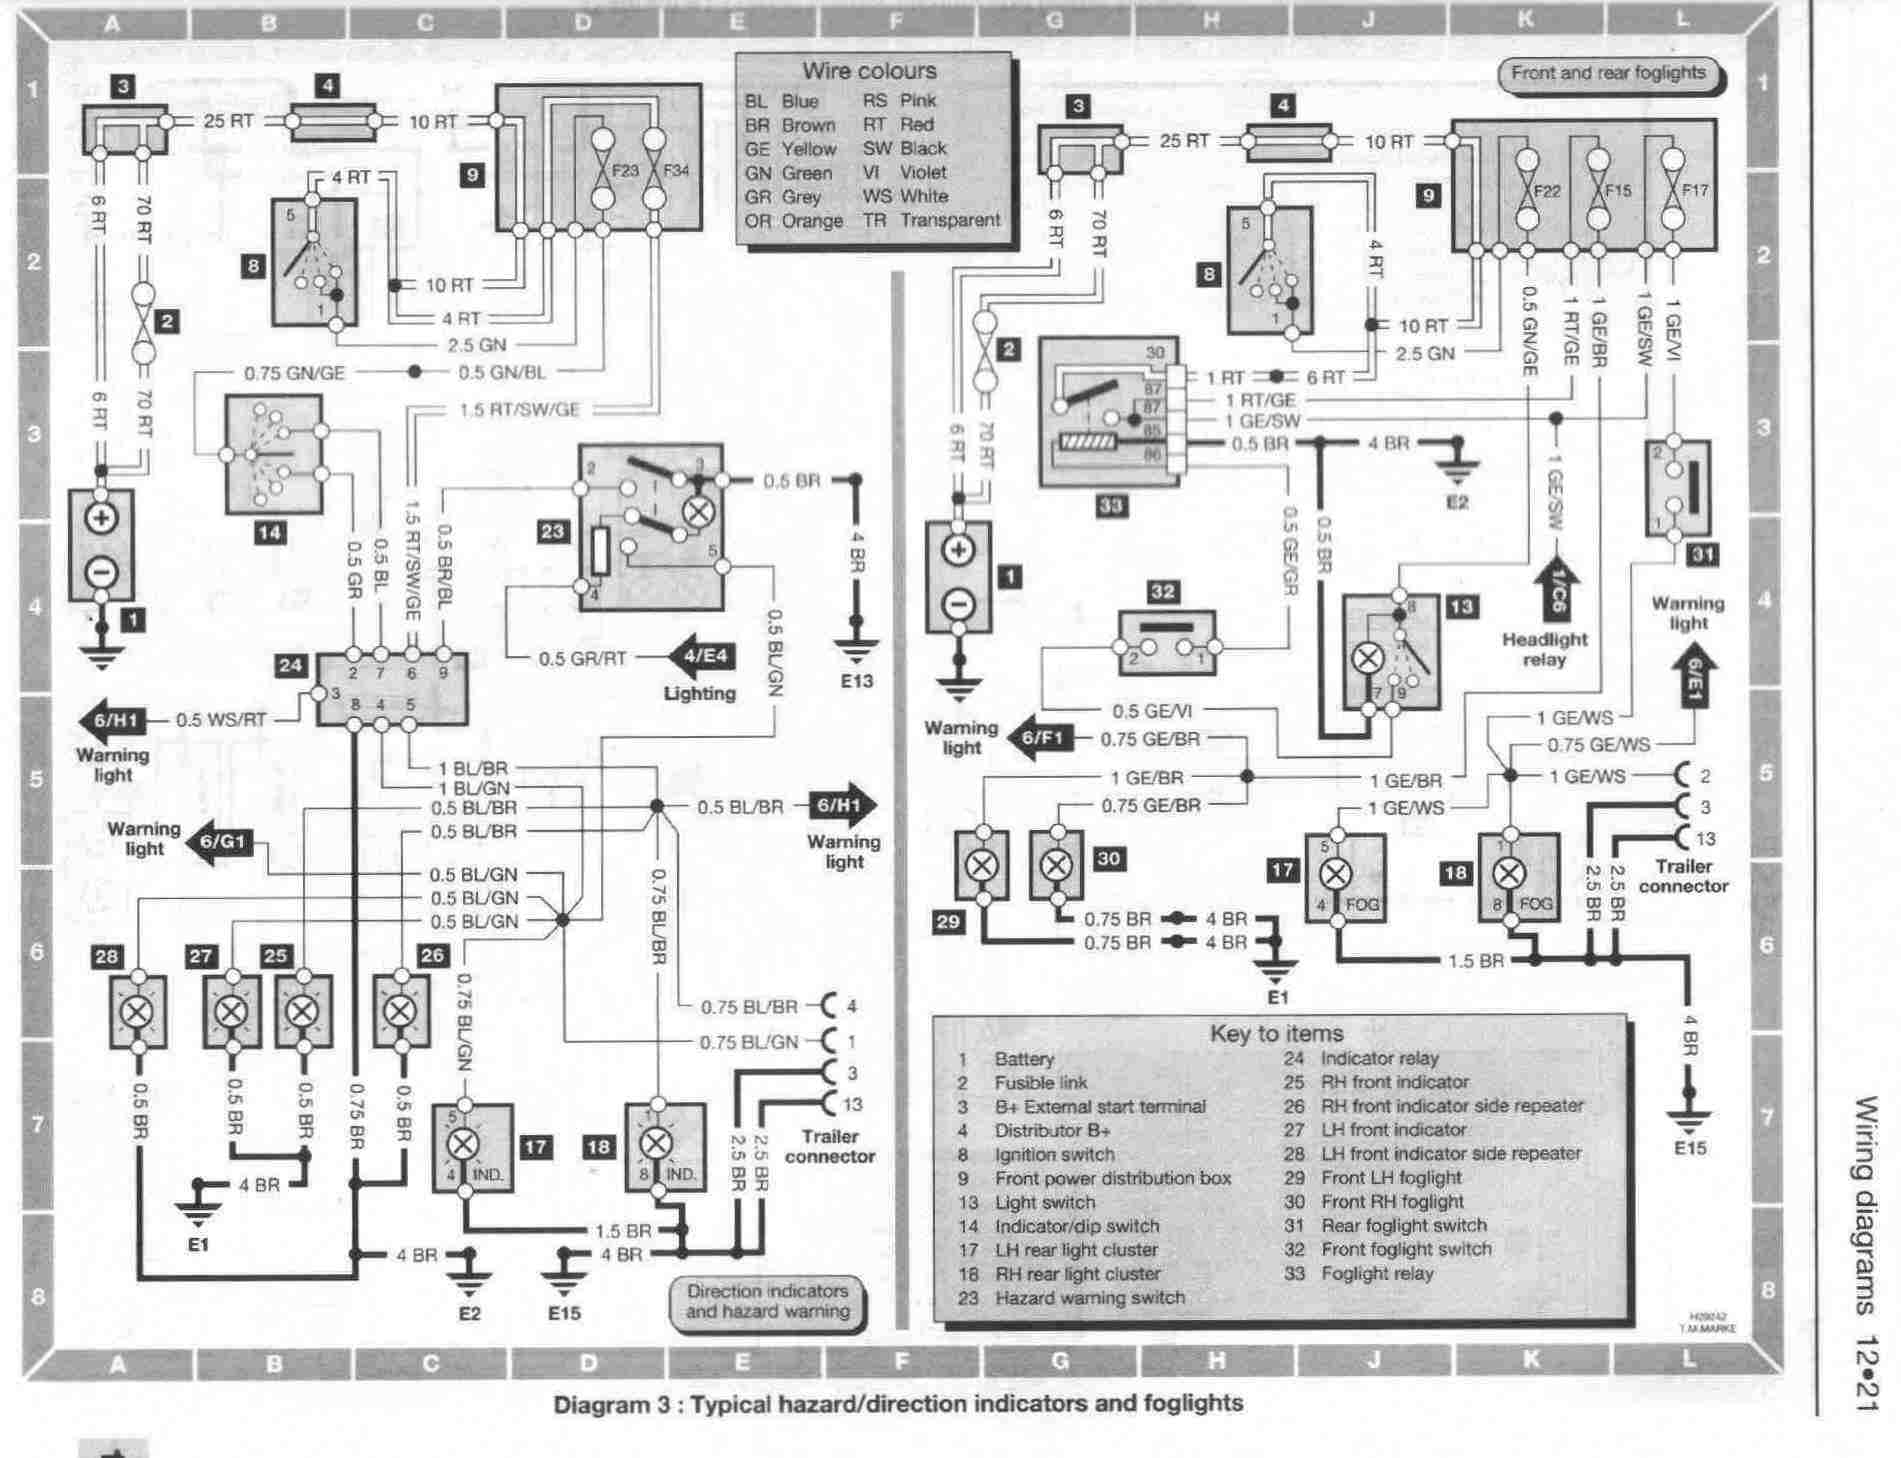 bmw 525i radio wiring diagram with 1985 Bmw 325e Manual Wiring Diagrams on Wiring Diagram 2003 Mini Cooper likewise Bmw 525i Fuse Box Model Wiring Diagram Photos For additionally Bmw Audio Wiring Diagram E39 in addition 91 Bmw 325i Fuse Box Diagram further Bmw 525 Wiring Diagrams.